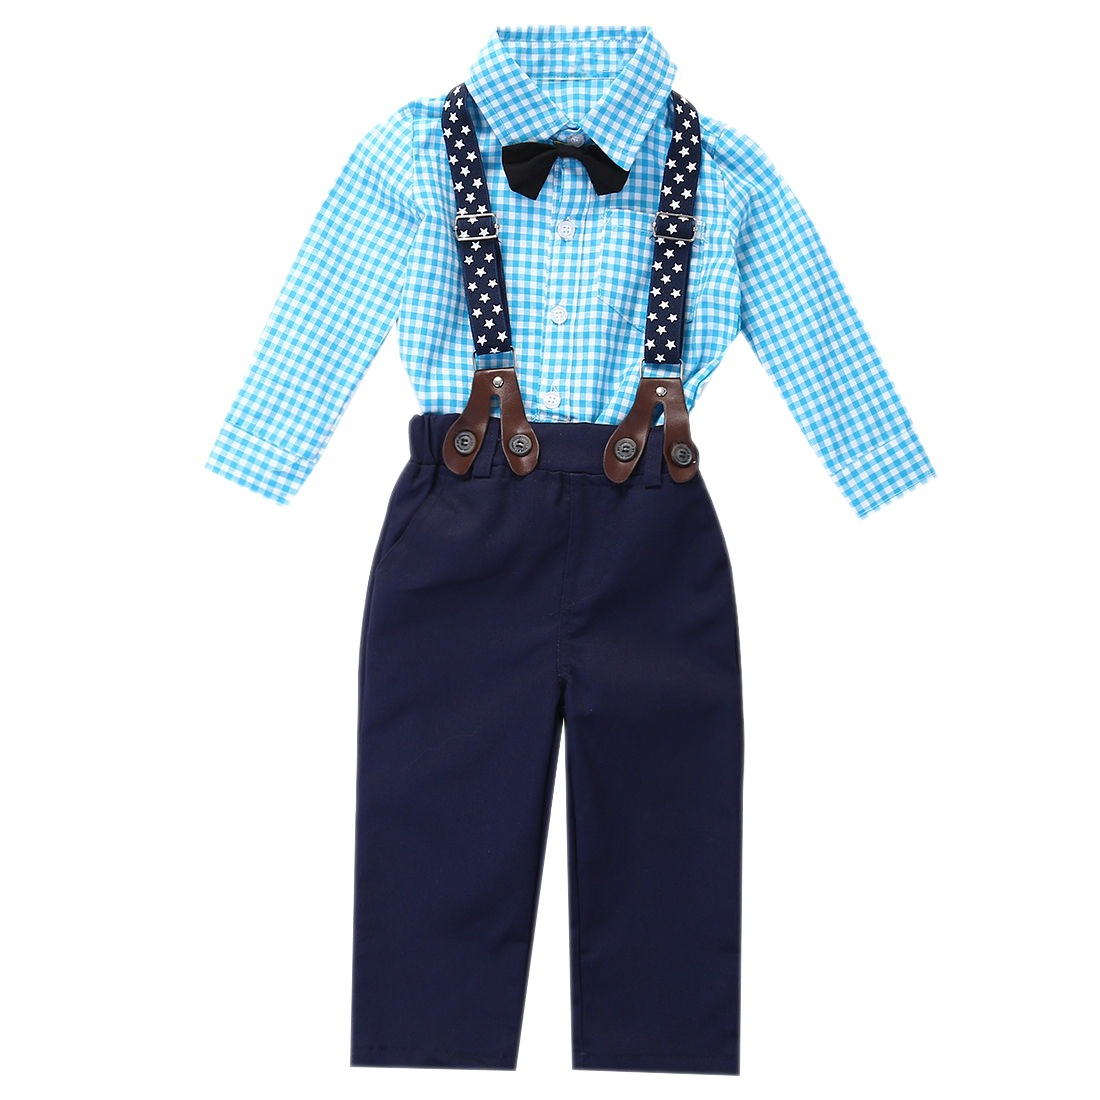 KEOL Best Sale 2pcs Kids Baby Boys Plaid ShirtSuspender Trouser Overalls Party Clothes Outfits